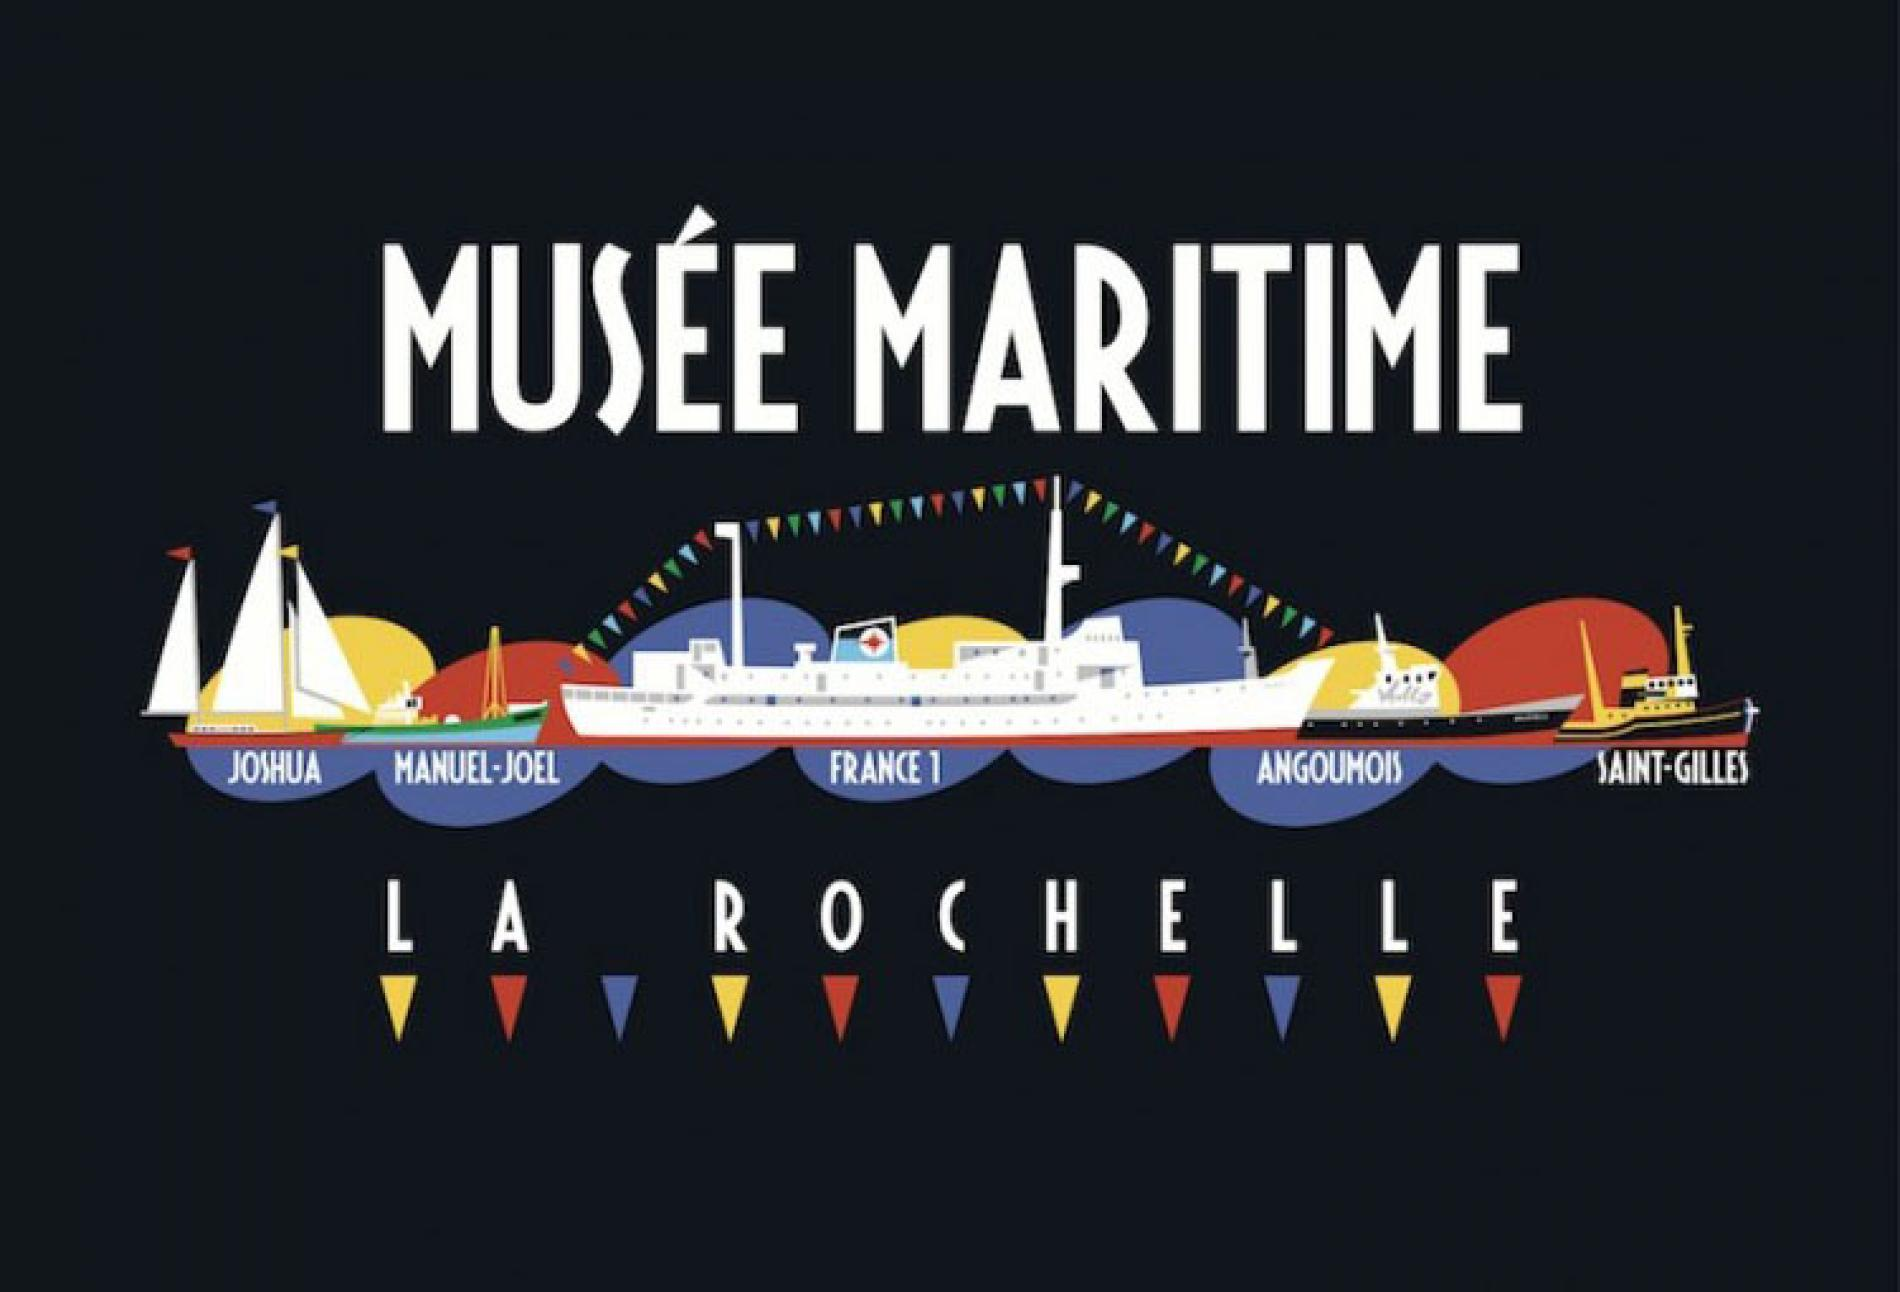 the Maritime Museum of La Rochelle